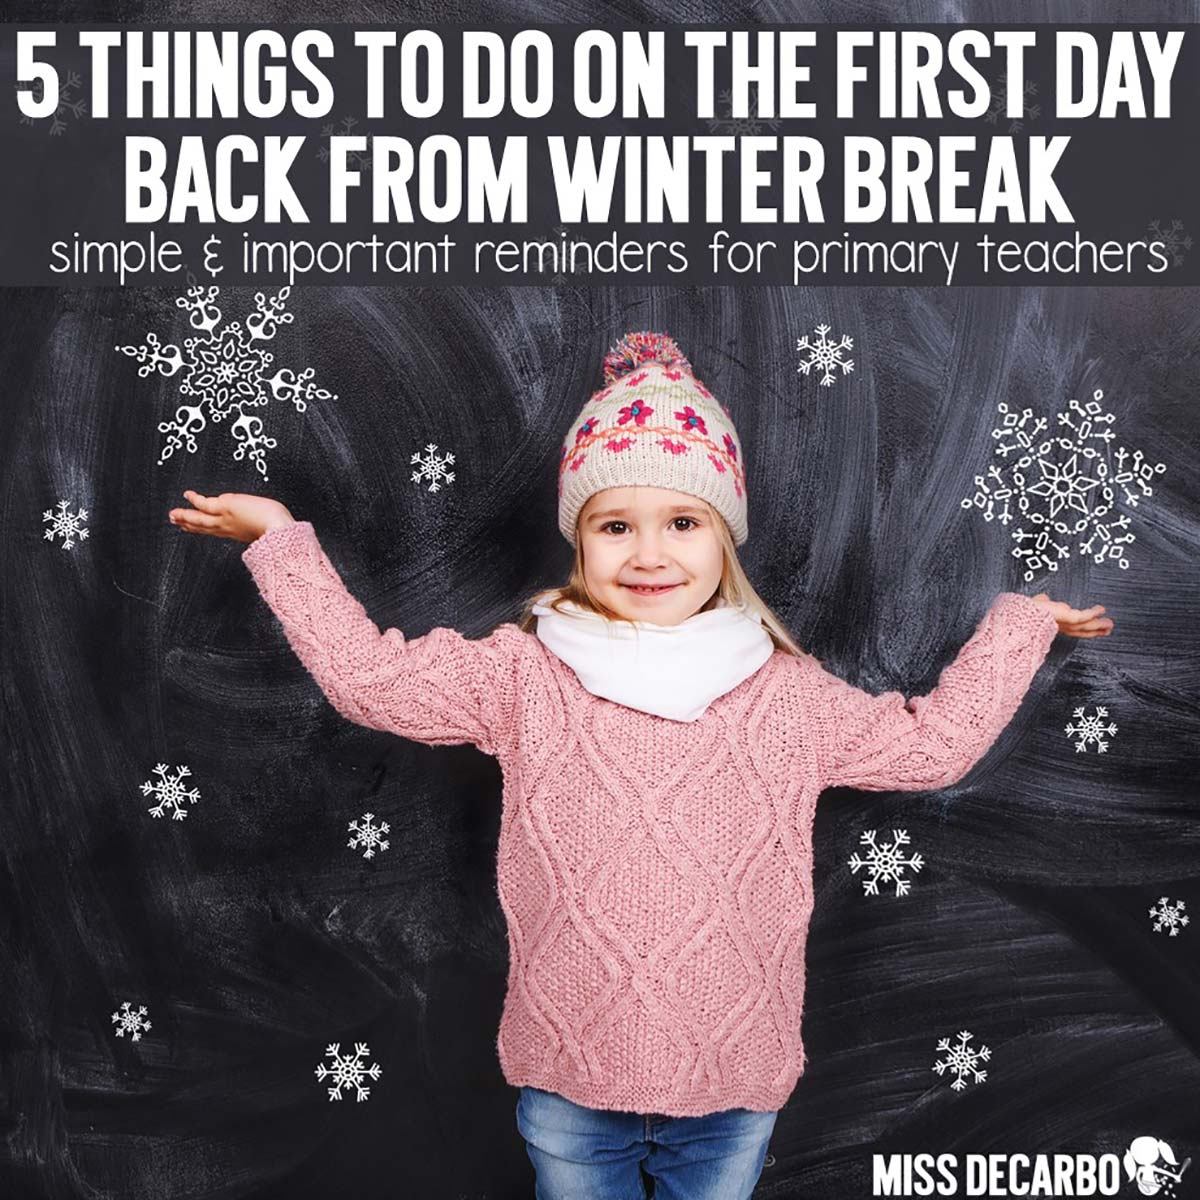 Teacher Tips for the First Day Back From Winter Break - Miss DeCarbo